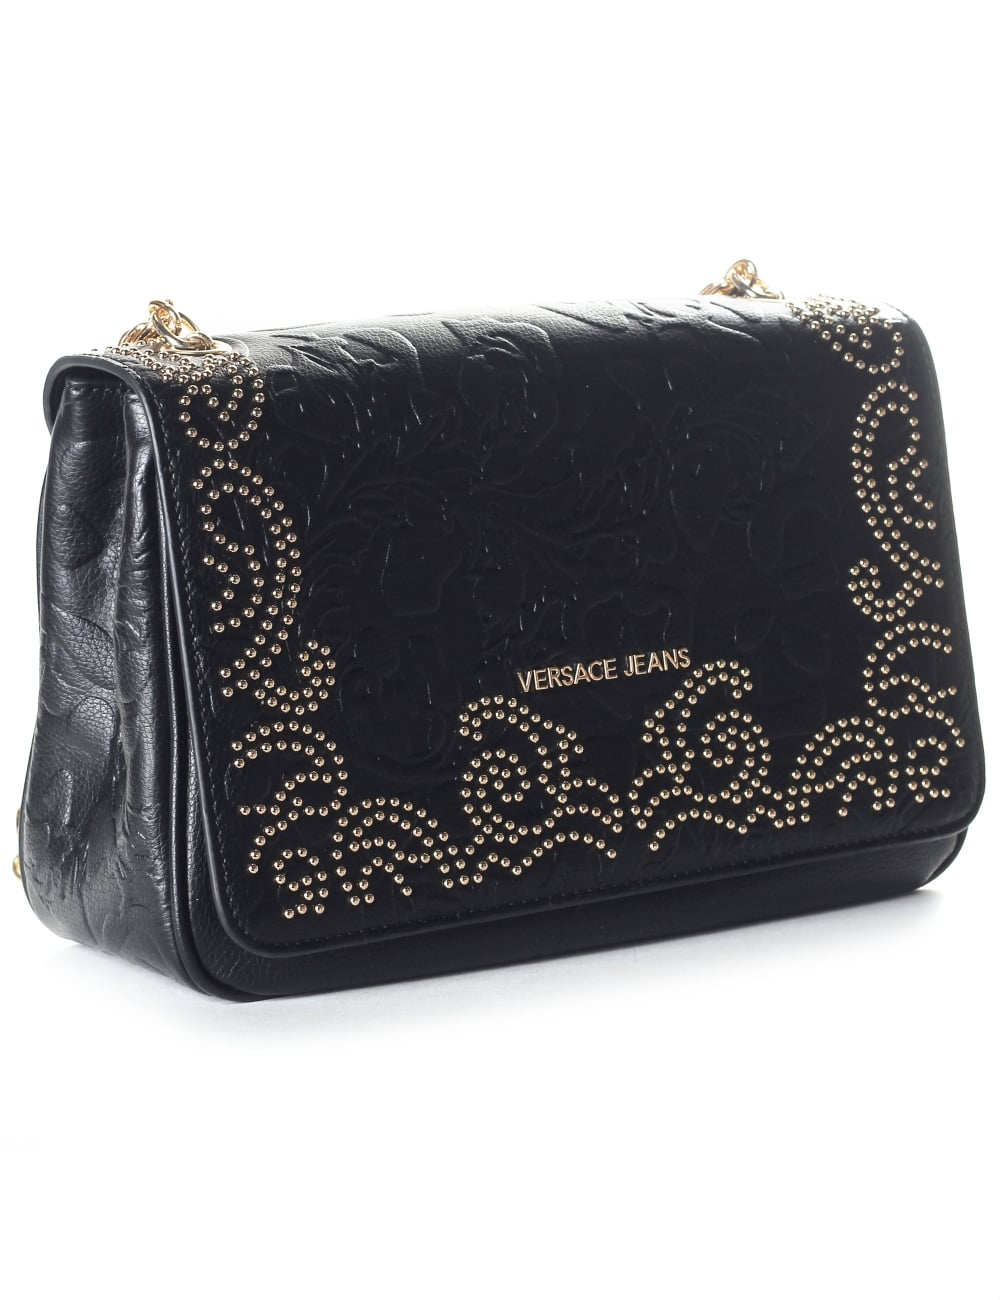 58c3b8f956 Versace Jeans Studded Women s Chain Strap Bag